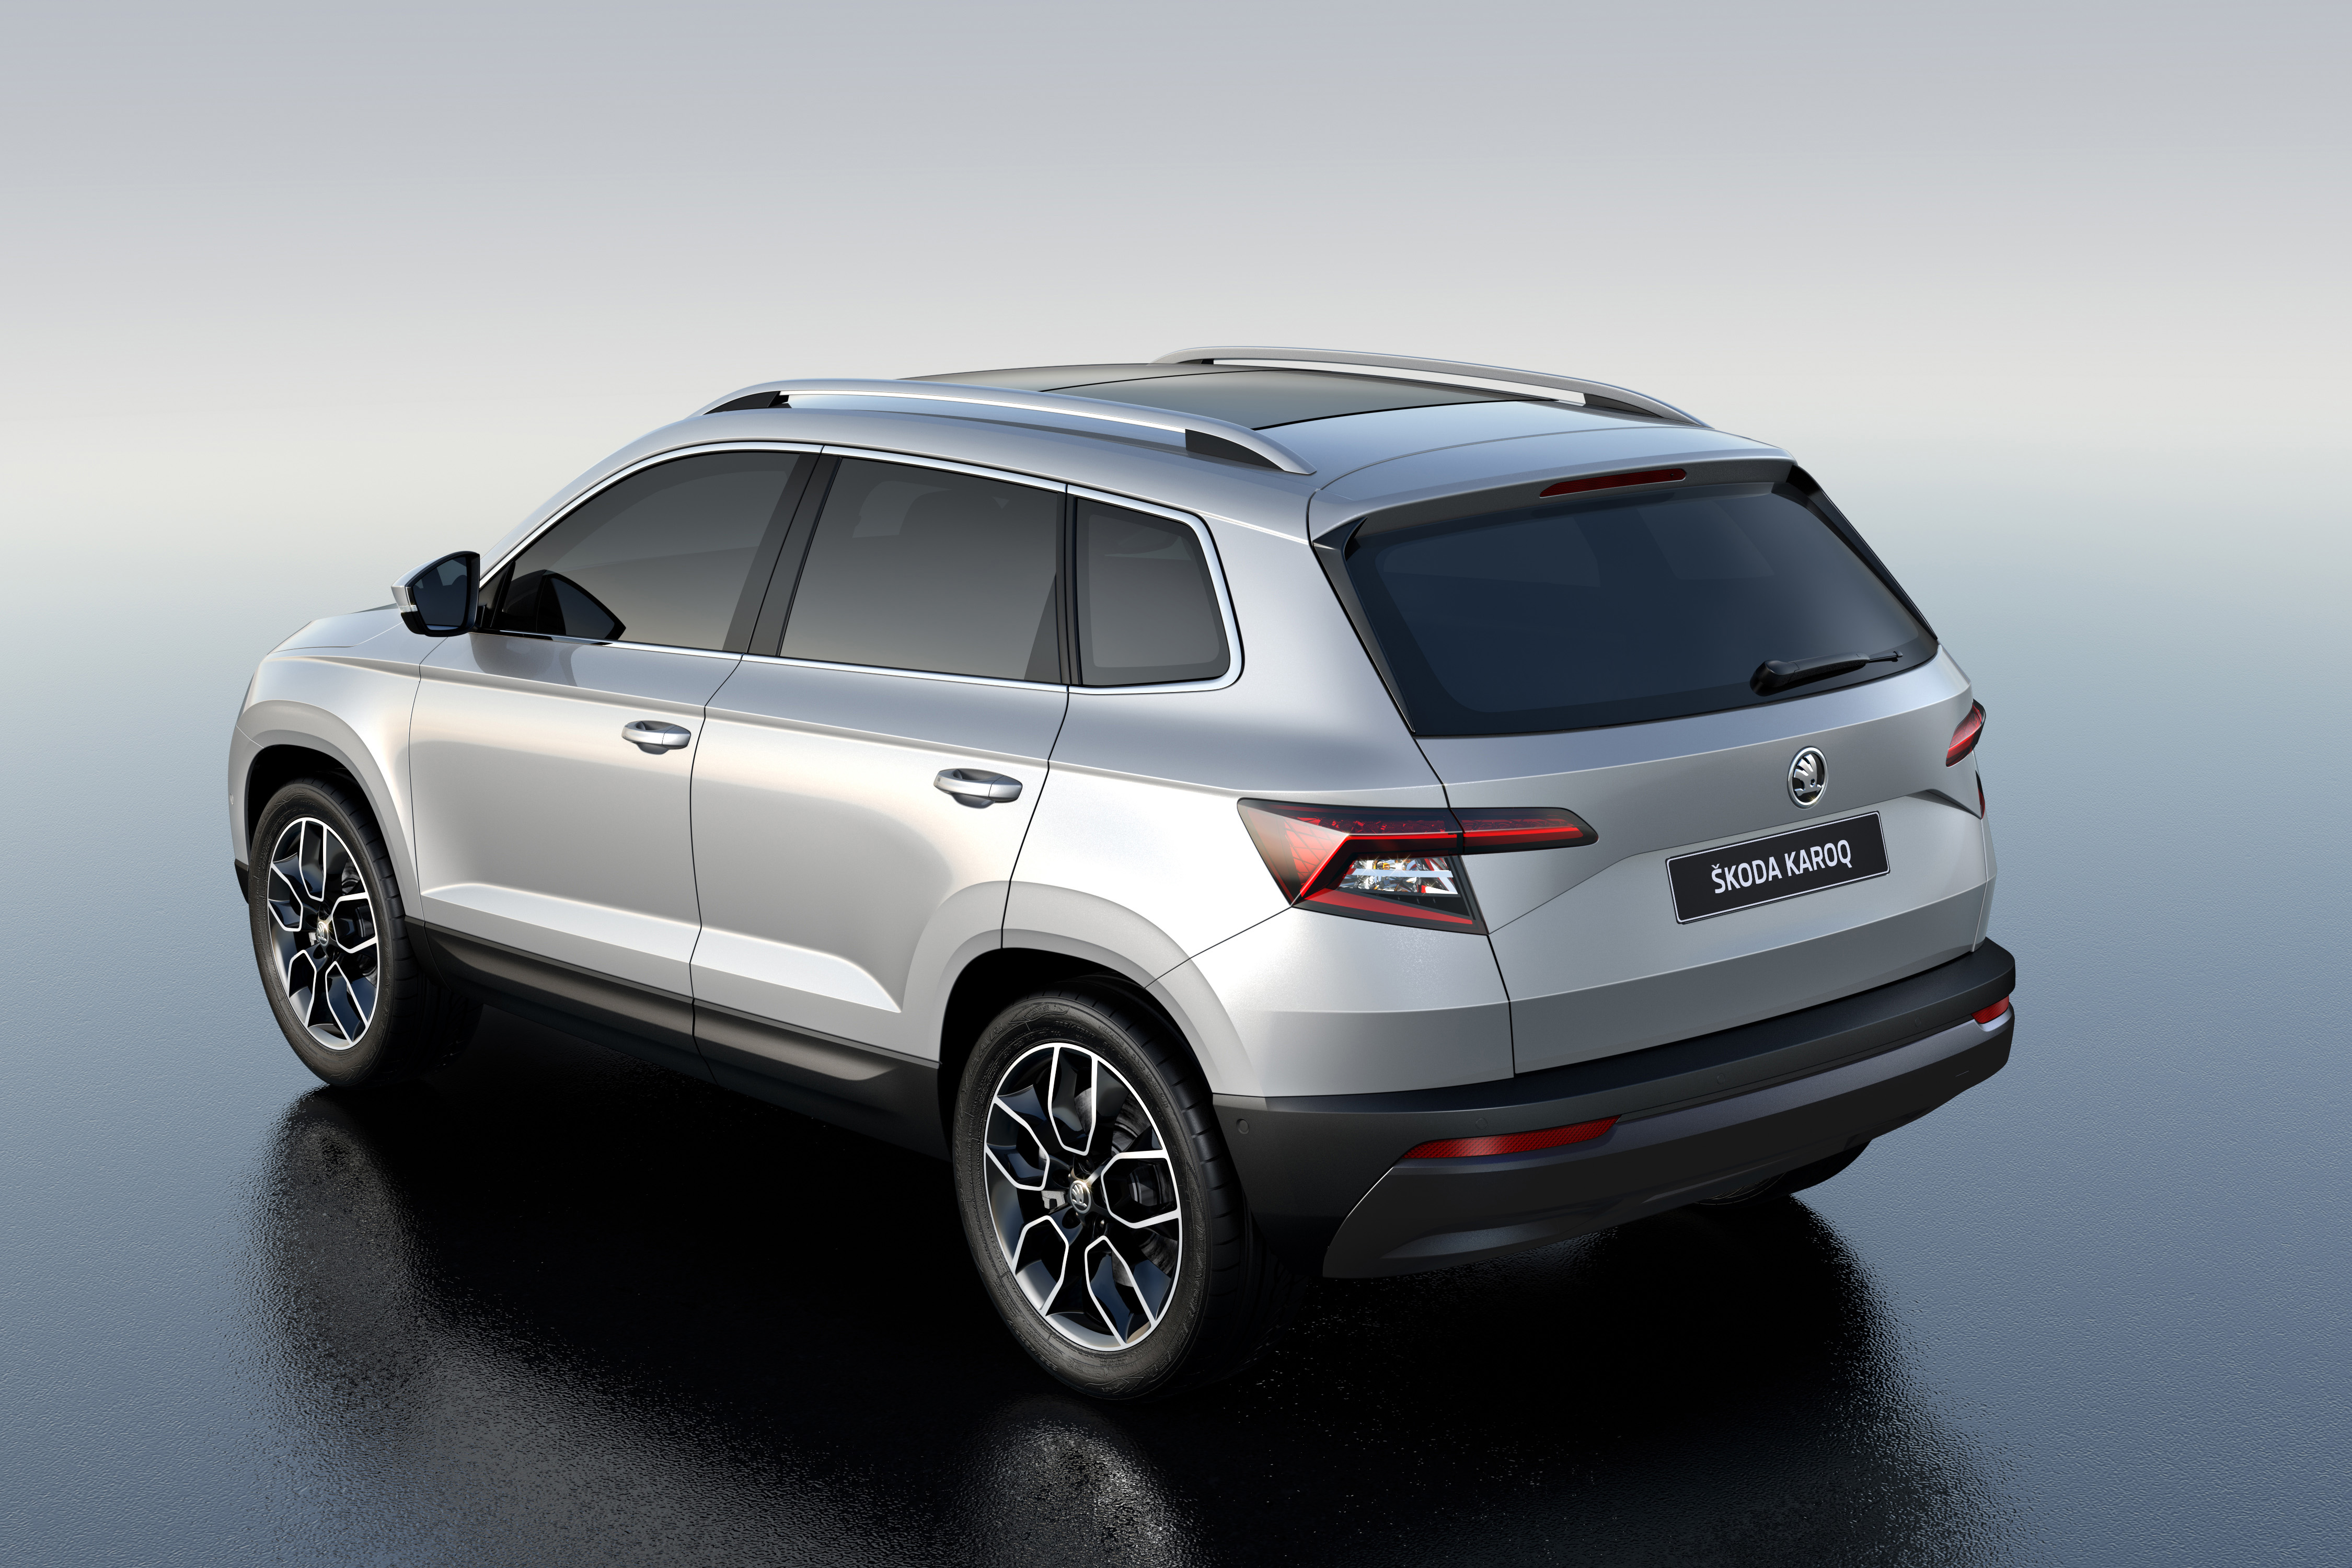 skoda karoq neues kompaktes suv mit viel platz und modernster technik presseportal. Black Bedroom Furniture Sets. Home Design Ideas